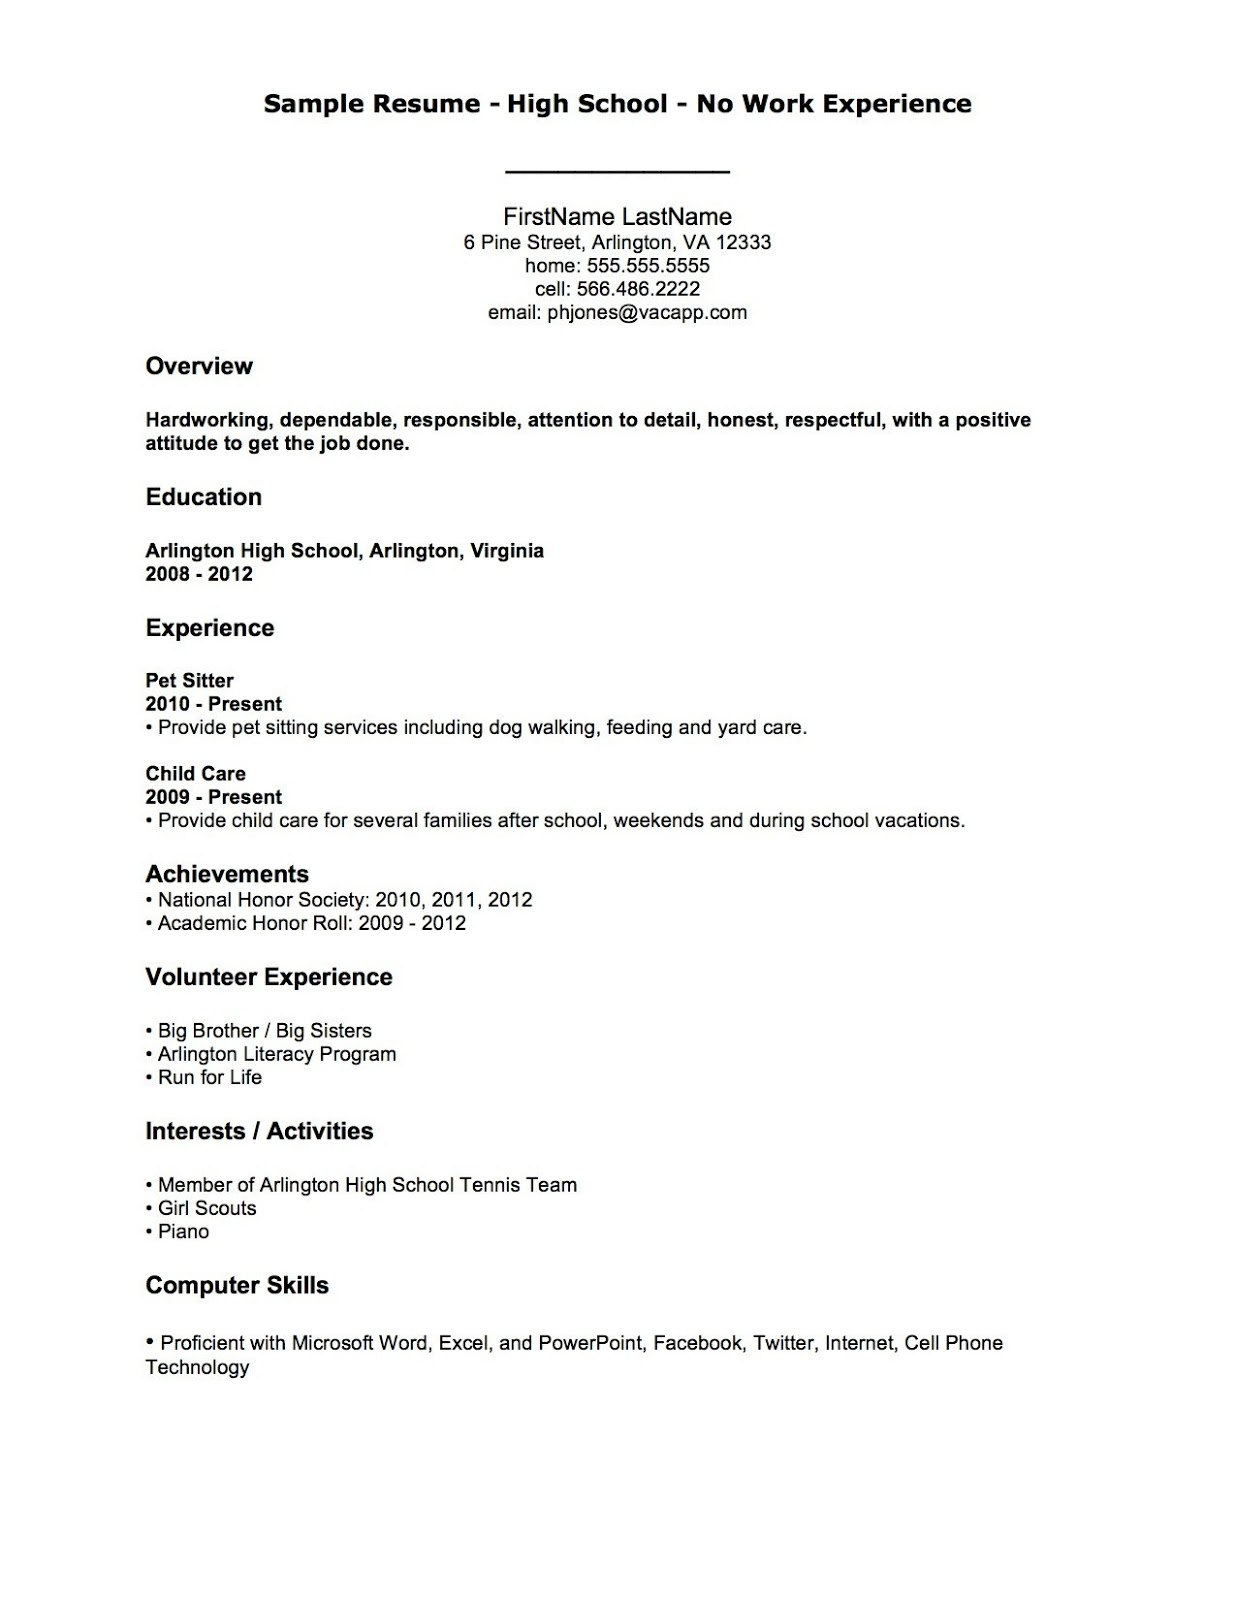 Make A Job Resume. how to make a job resume step by step ~ gopitch ...